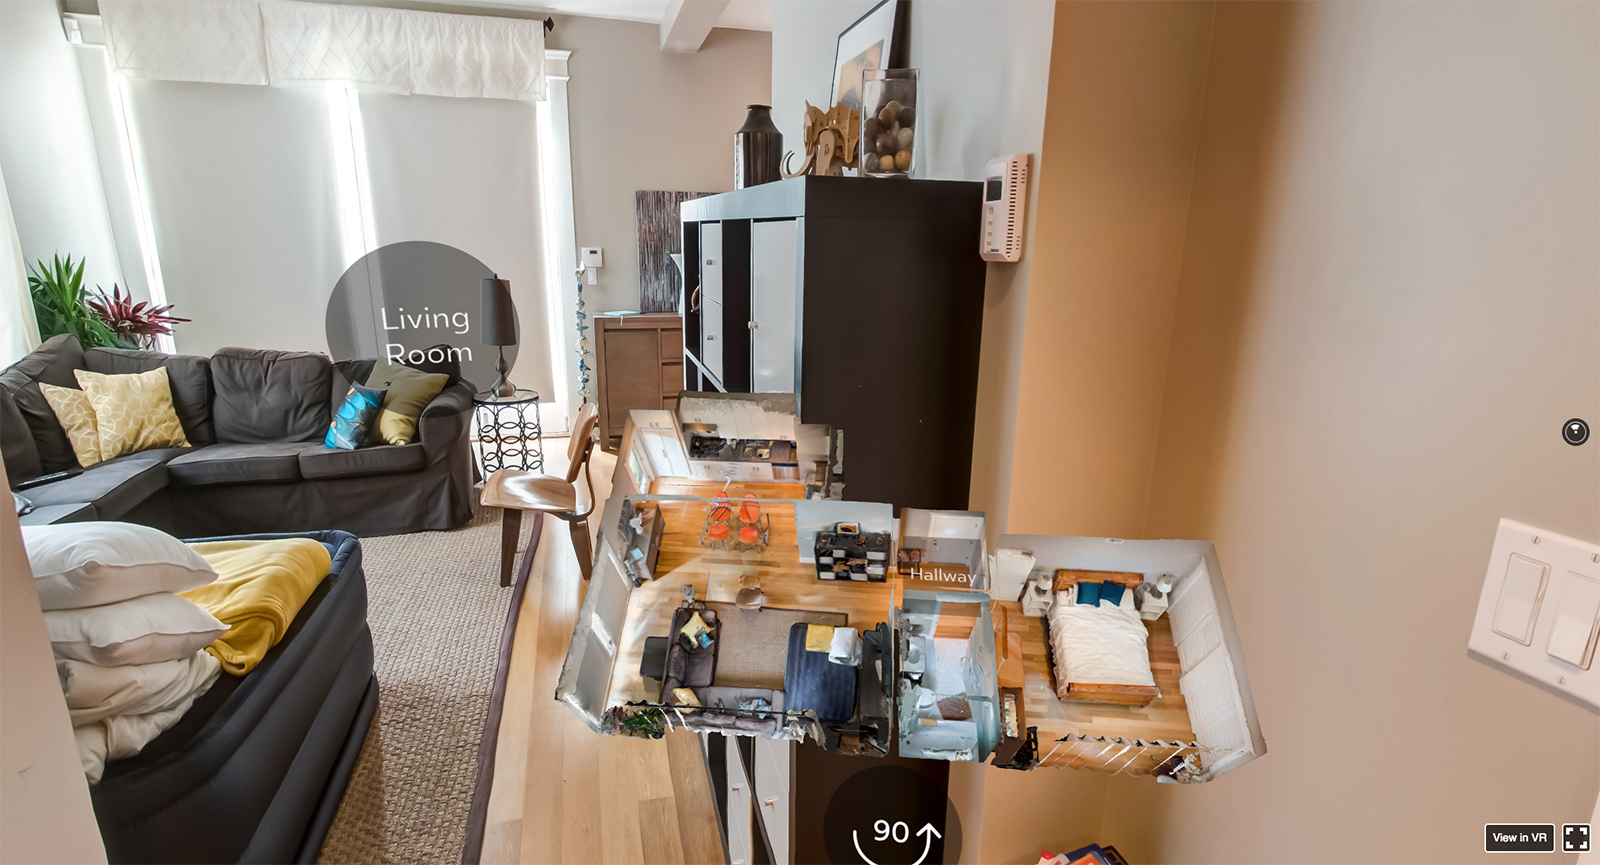 Airbnb Ar and VR services to be added